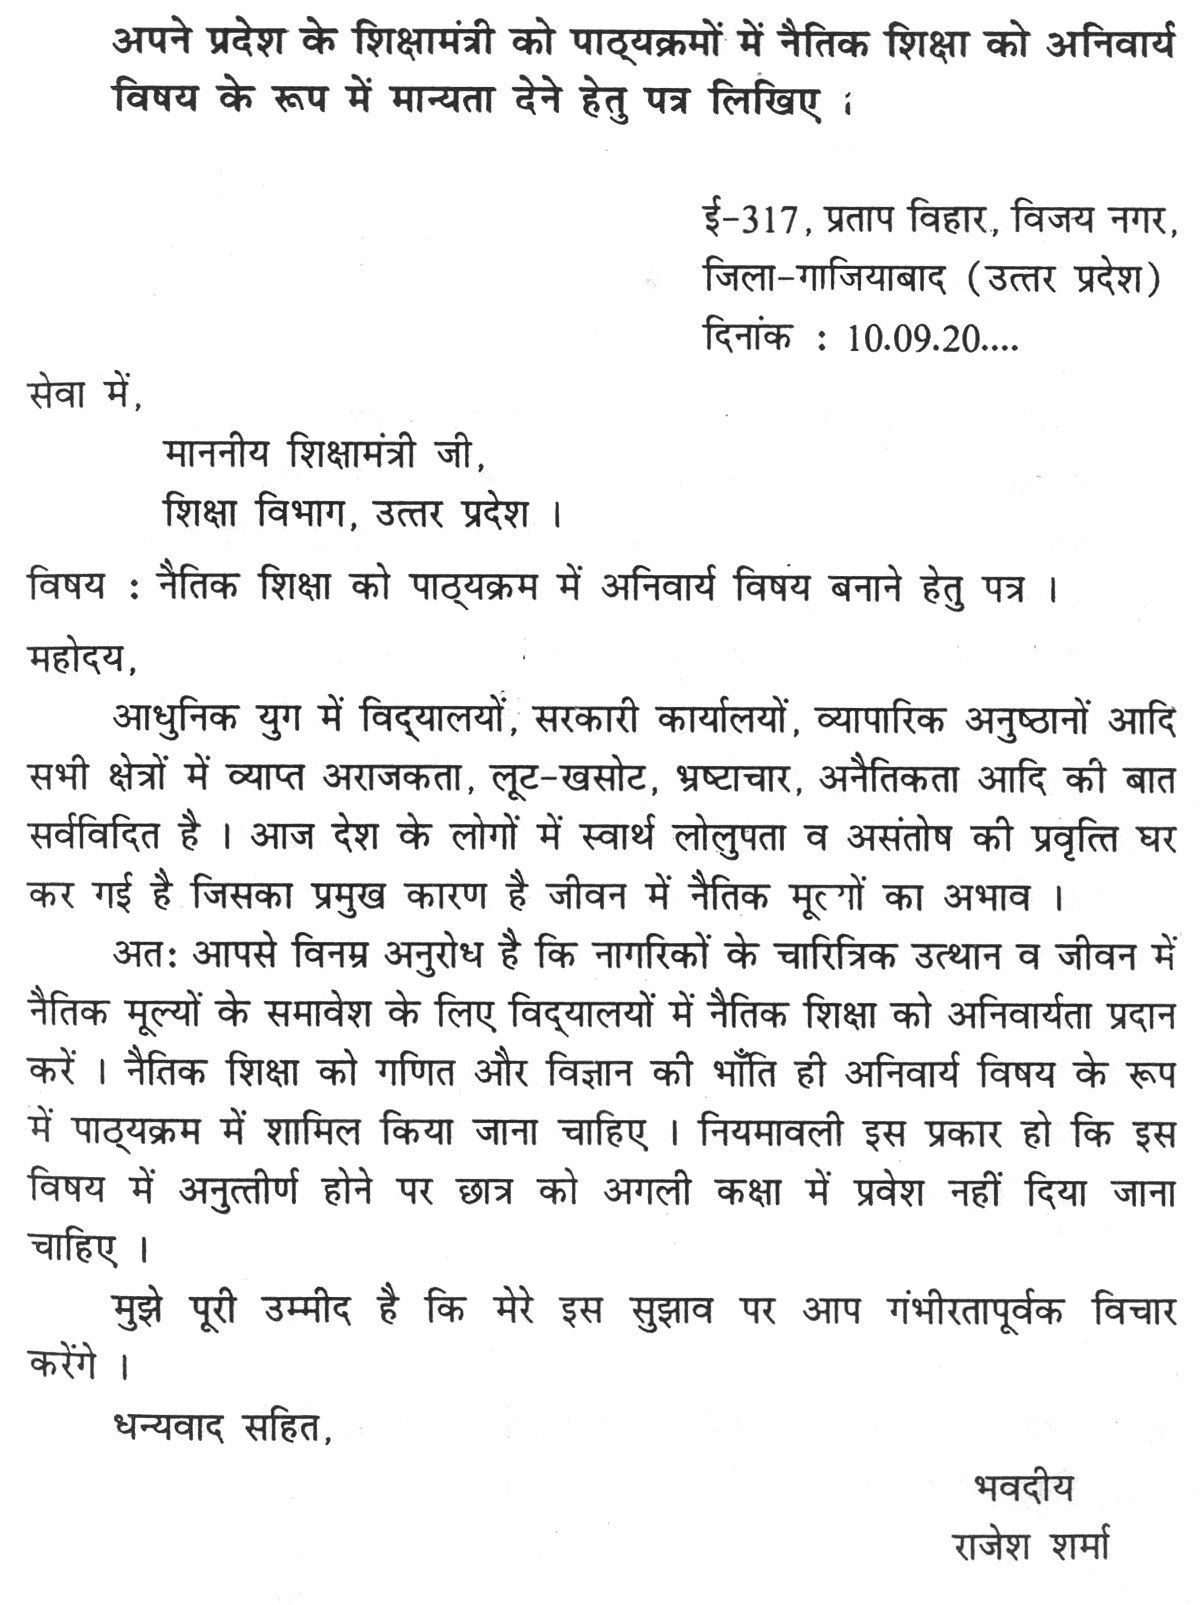 Formal Letter Writing Marathi Language Template Complaint Sample